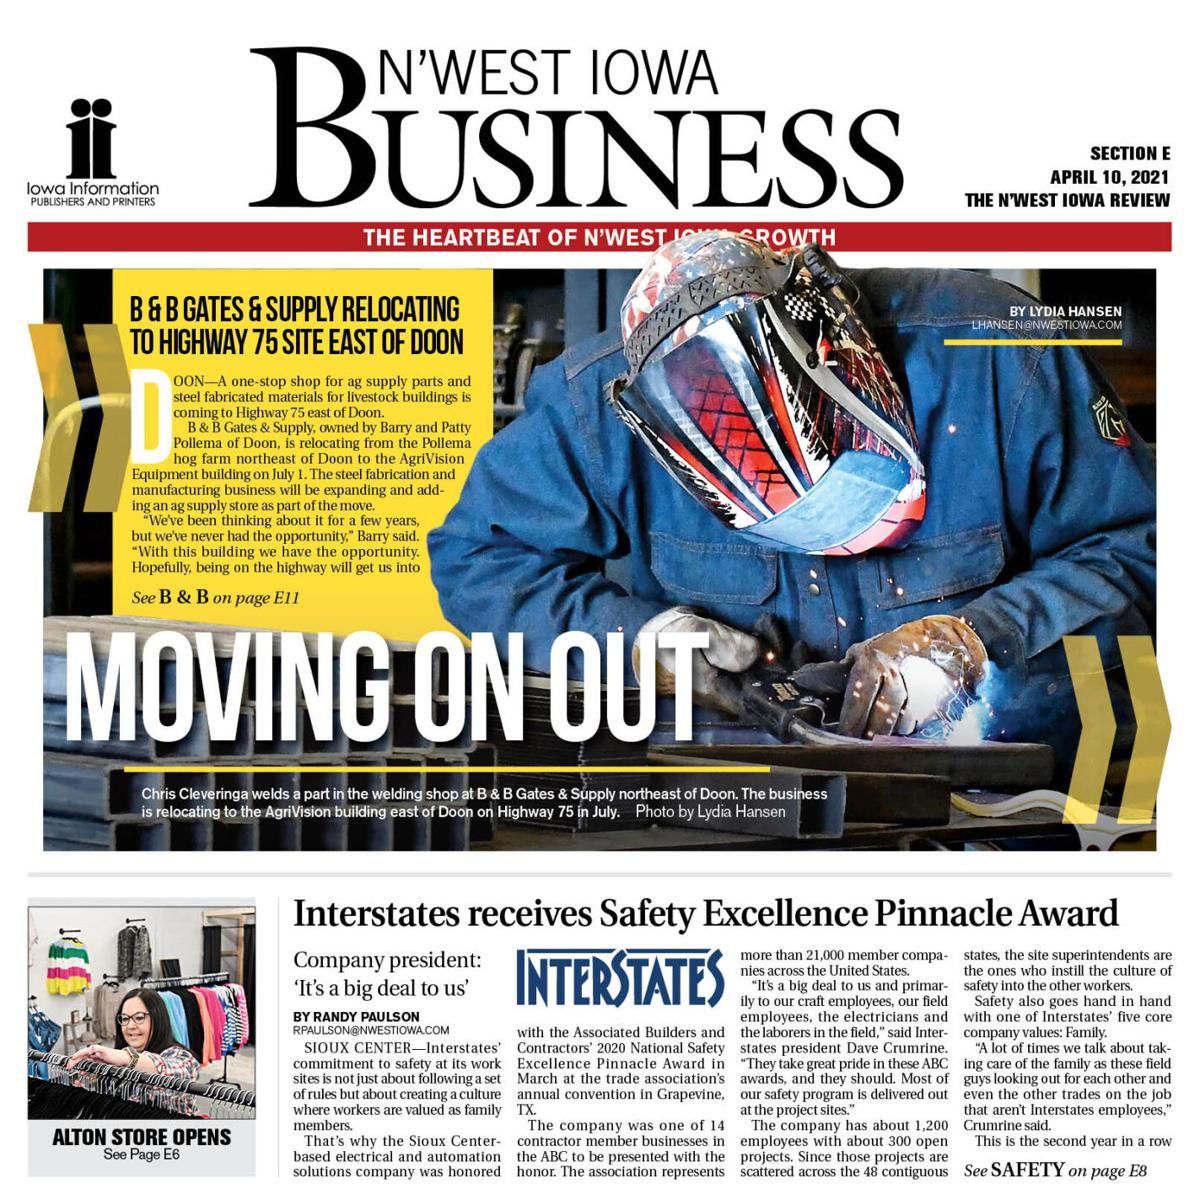 The N'West Iowa REVIEW Business April 10, 2021